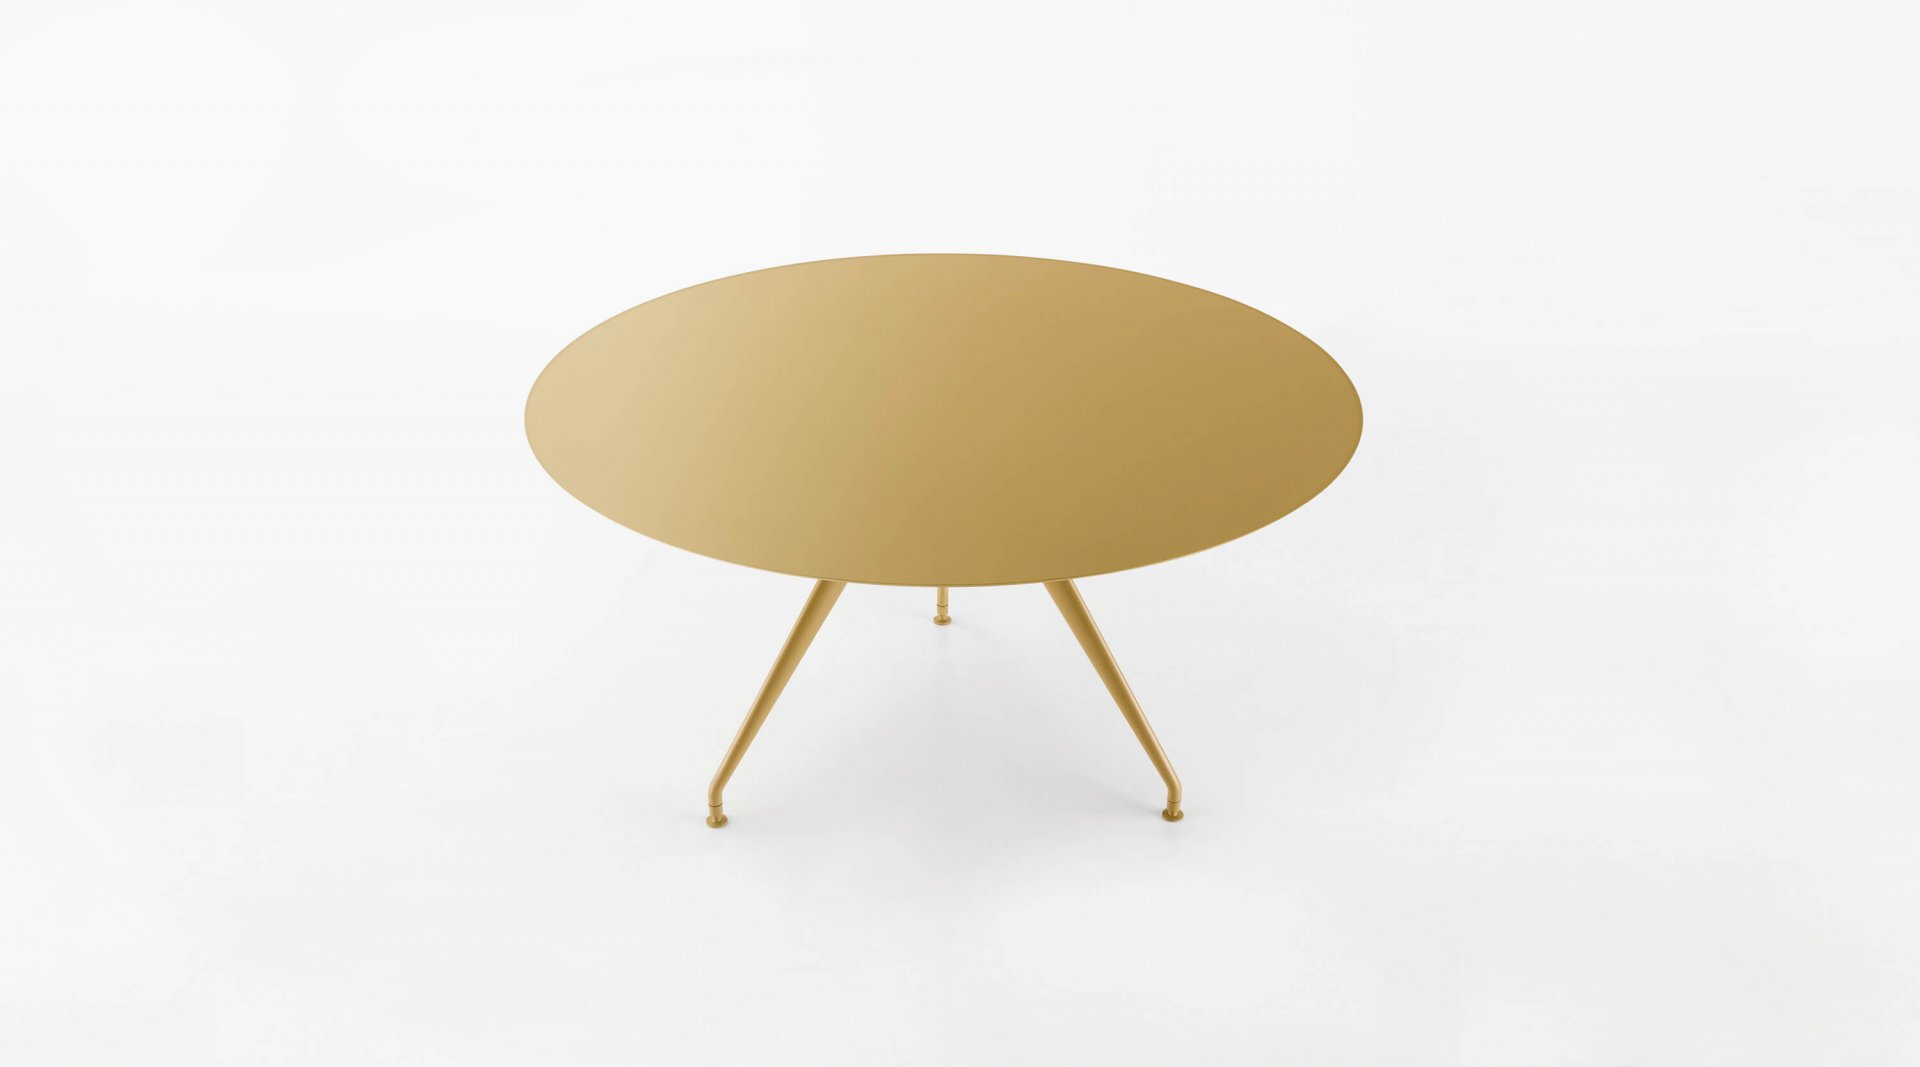 Manta table in round version with lacquered glass